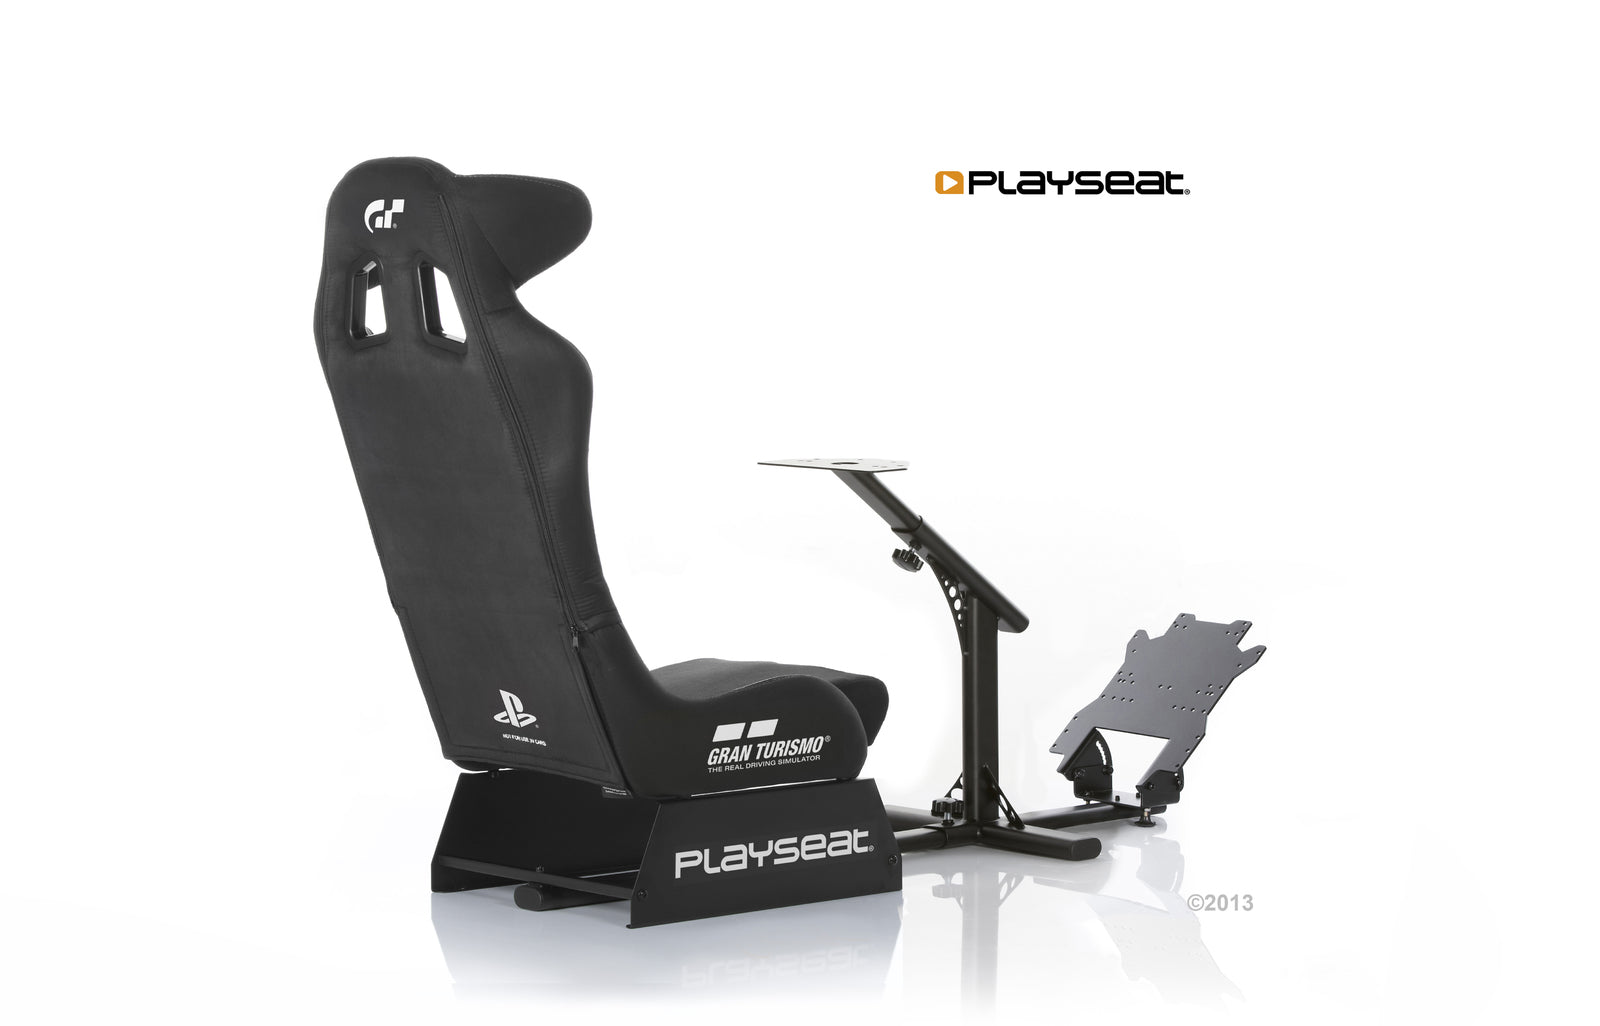 Playseat Evolution Gran Turismo Racing Chair